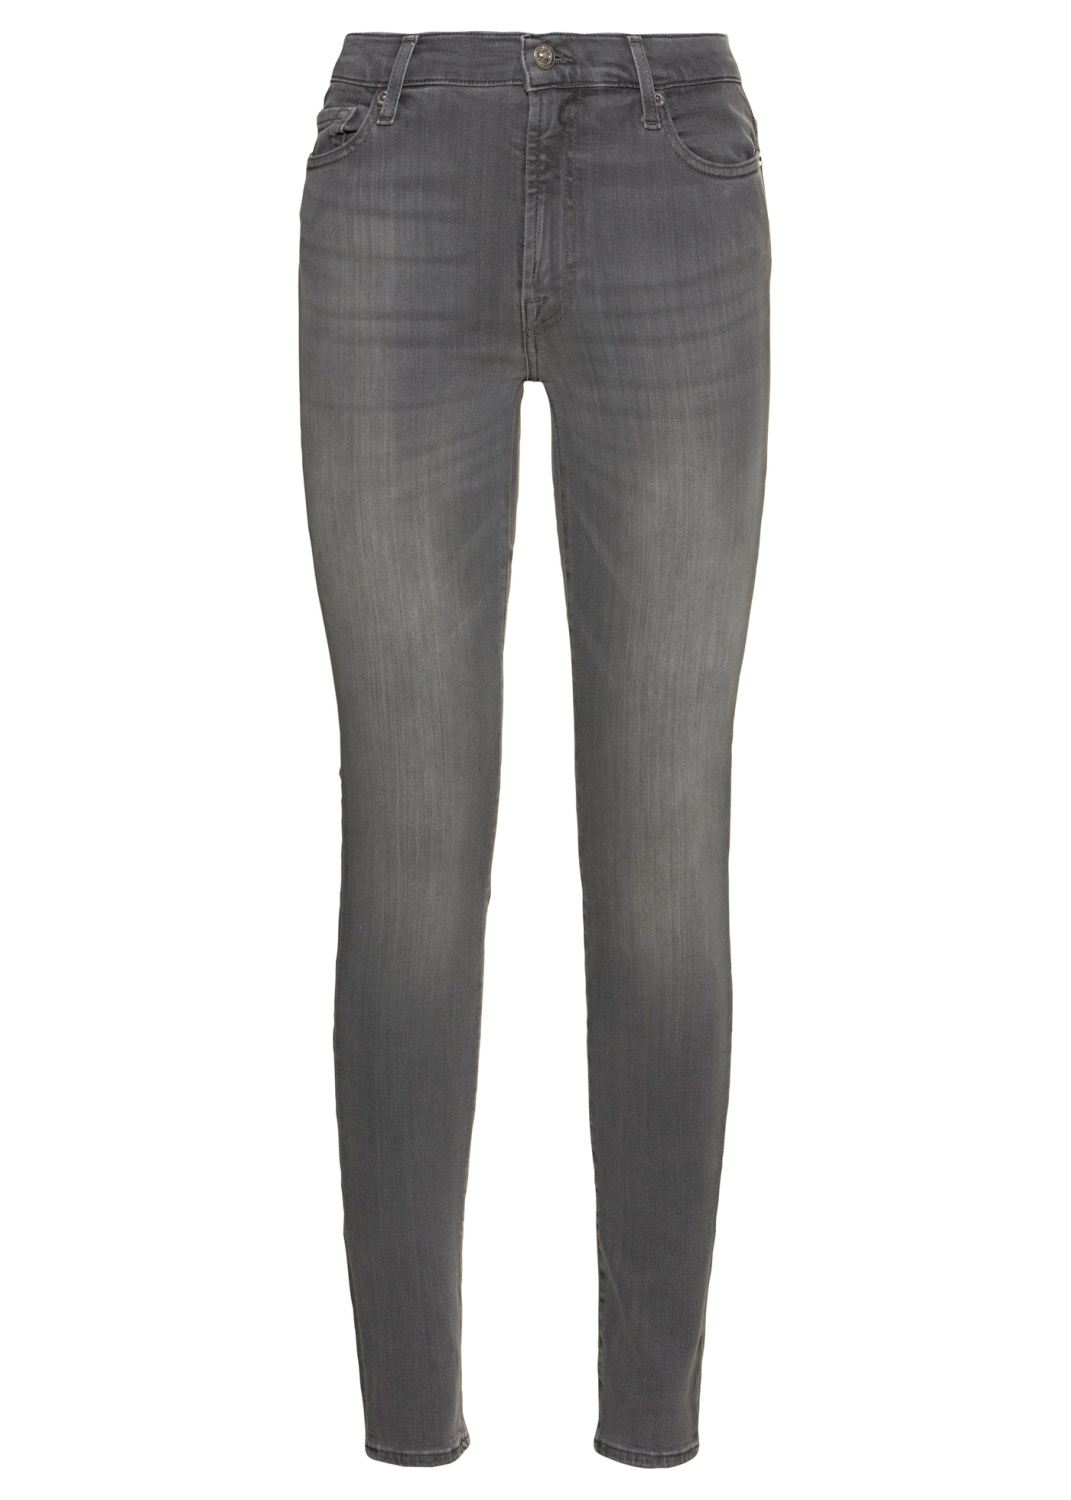 HW SKINNY Slim Illusion Luxe Bliss image number 0